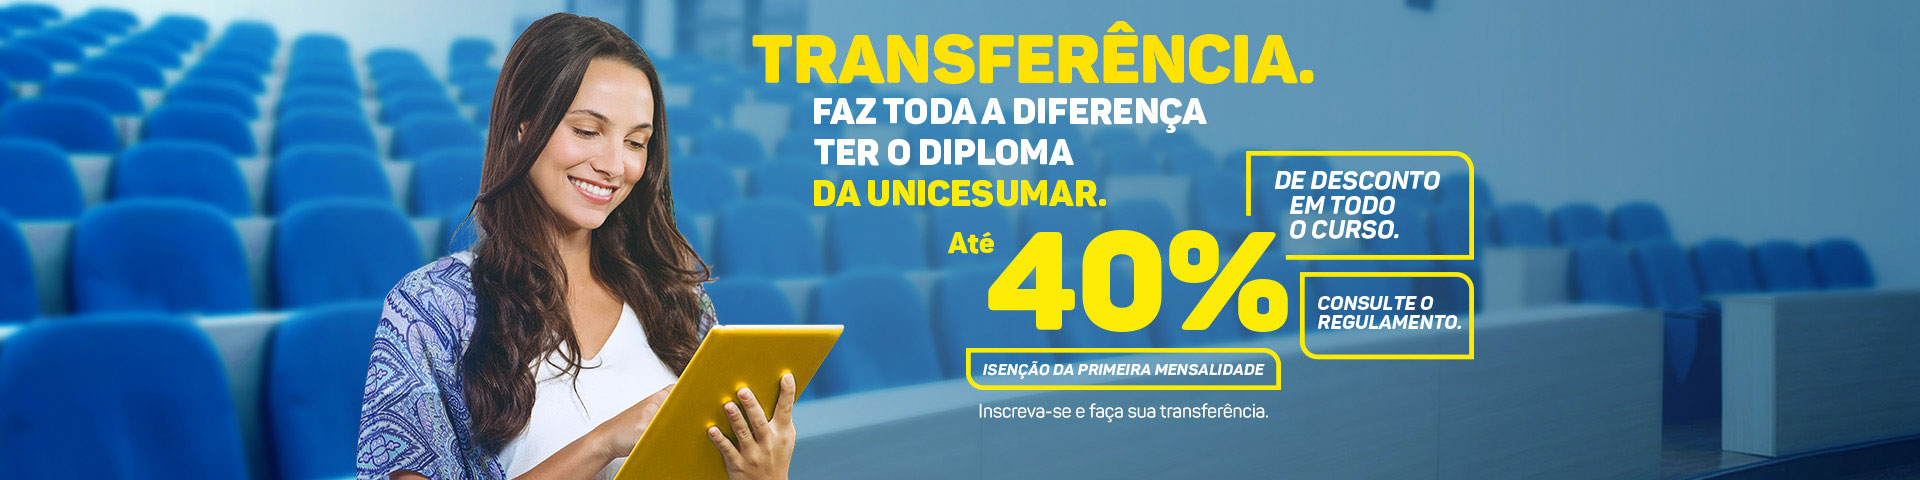 Banner-transferencia-2019-home-1920x480px-40p-Londrina